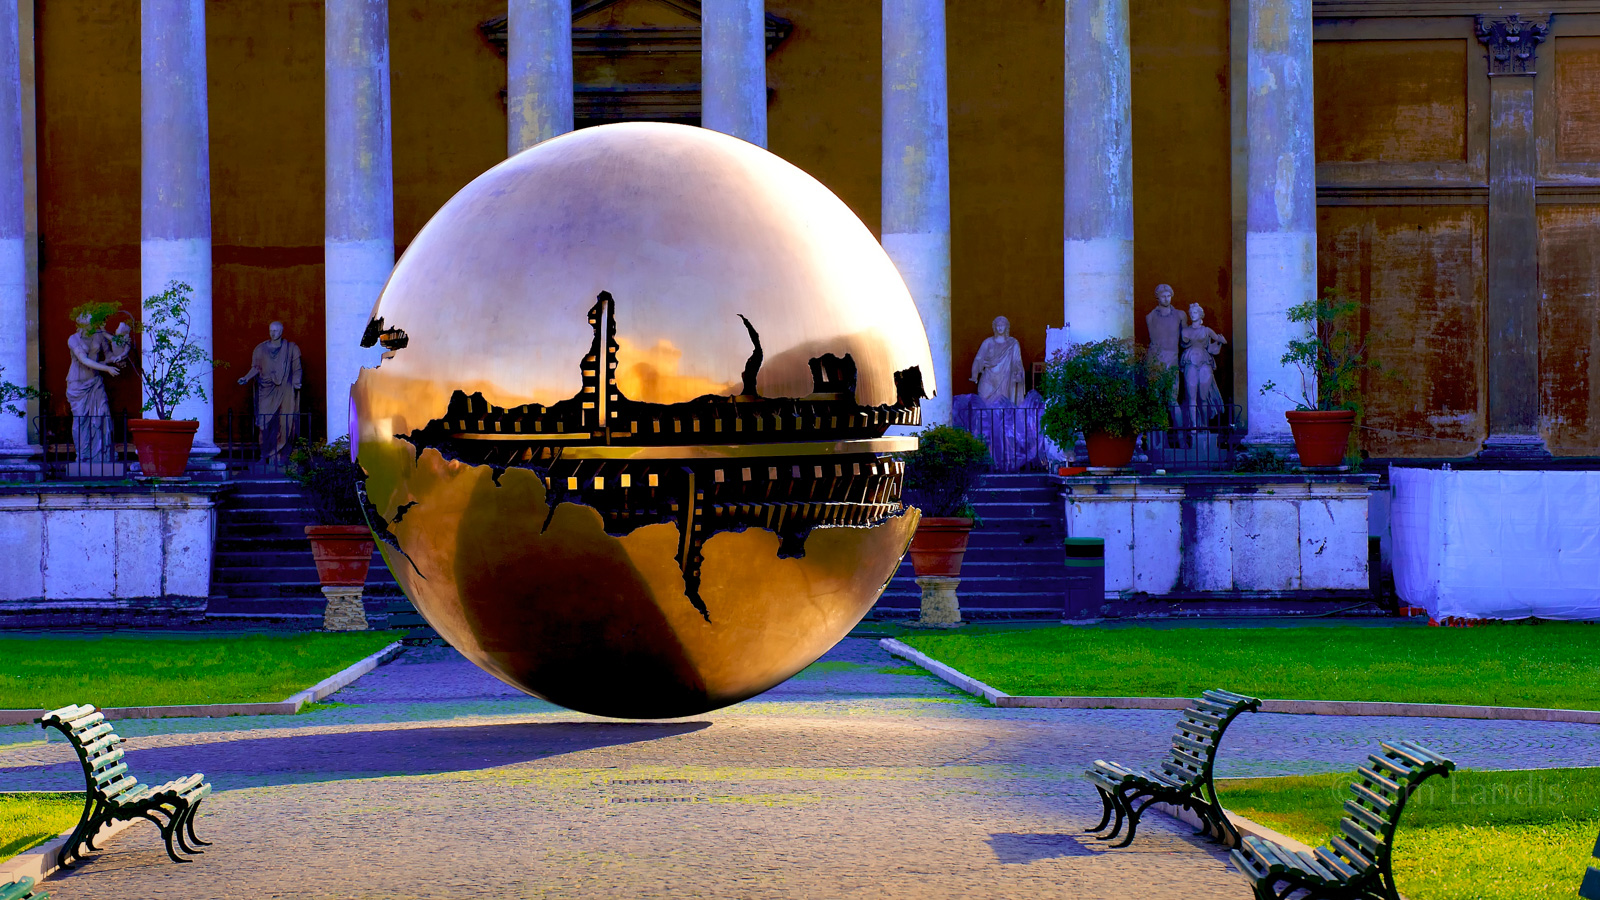 Italy, Rome, UFO, architecture, colums, fracture, gears, orb, park bench, reflections, shadow, statues, photo